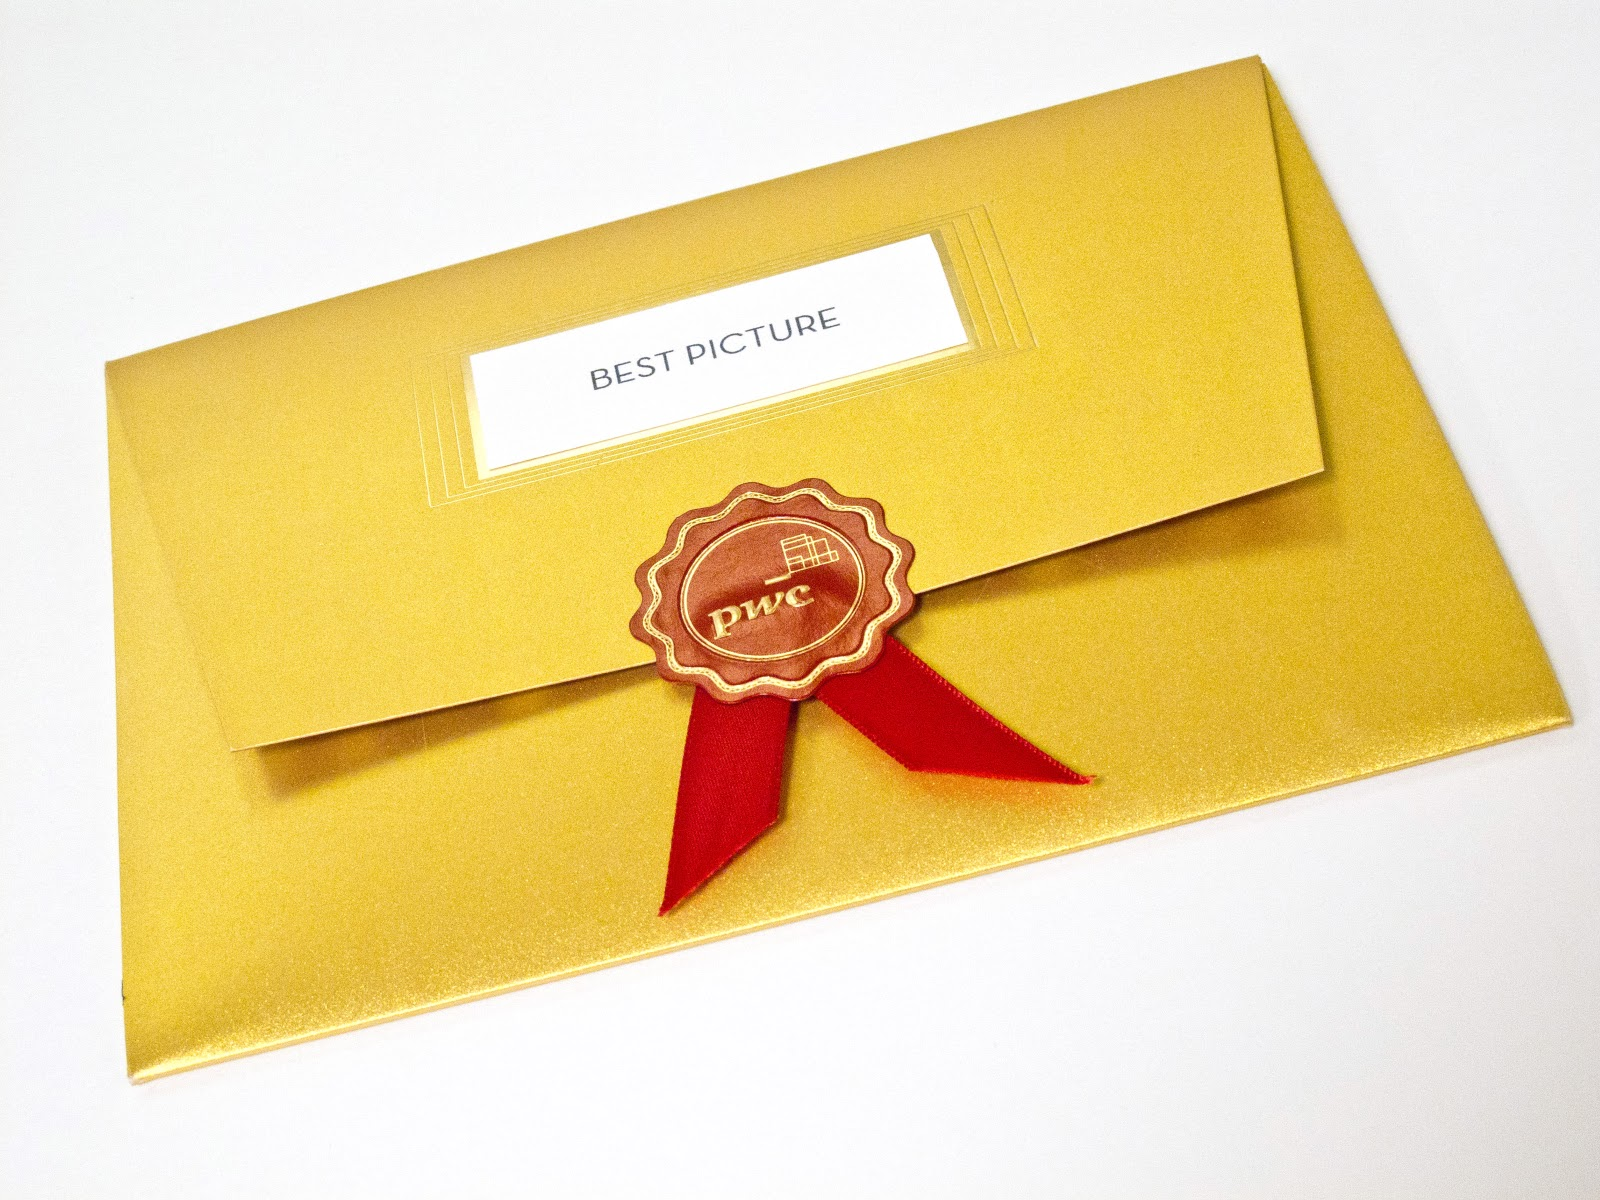 Academy awards envelope clipart